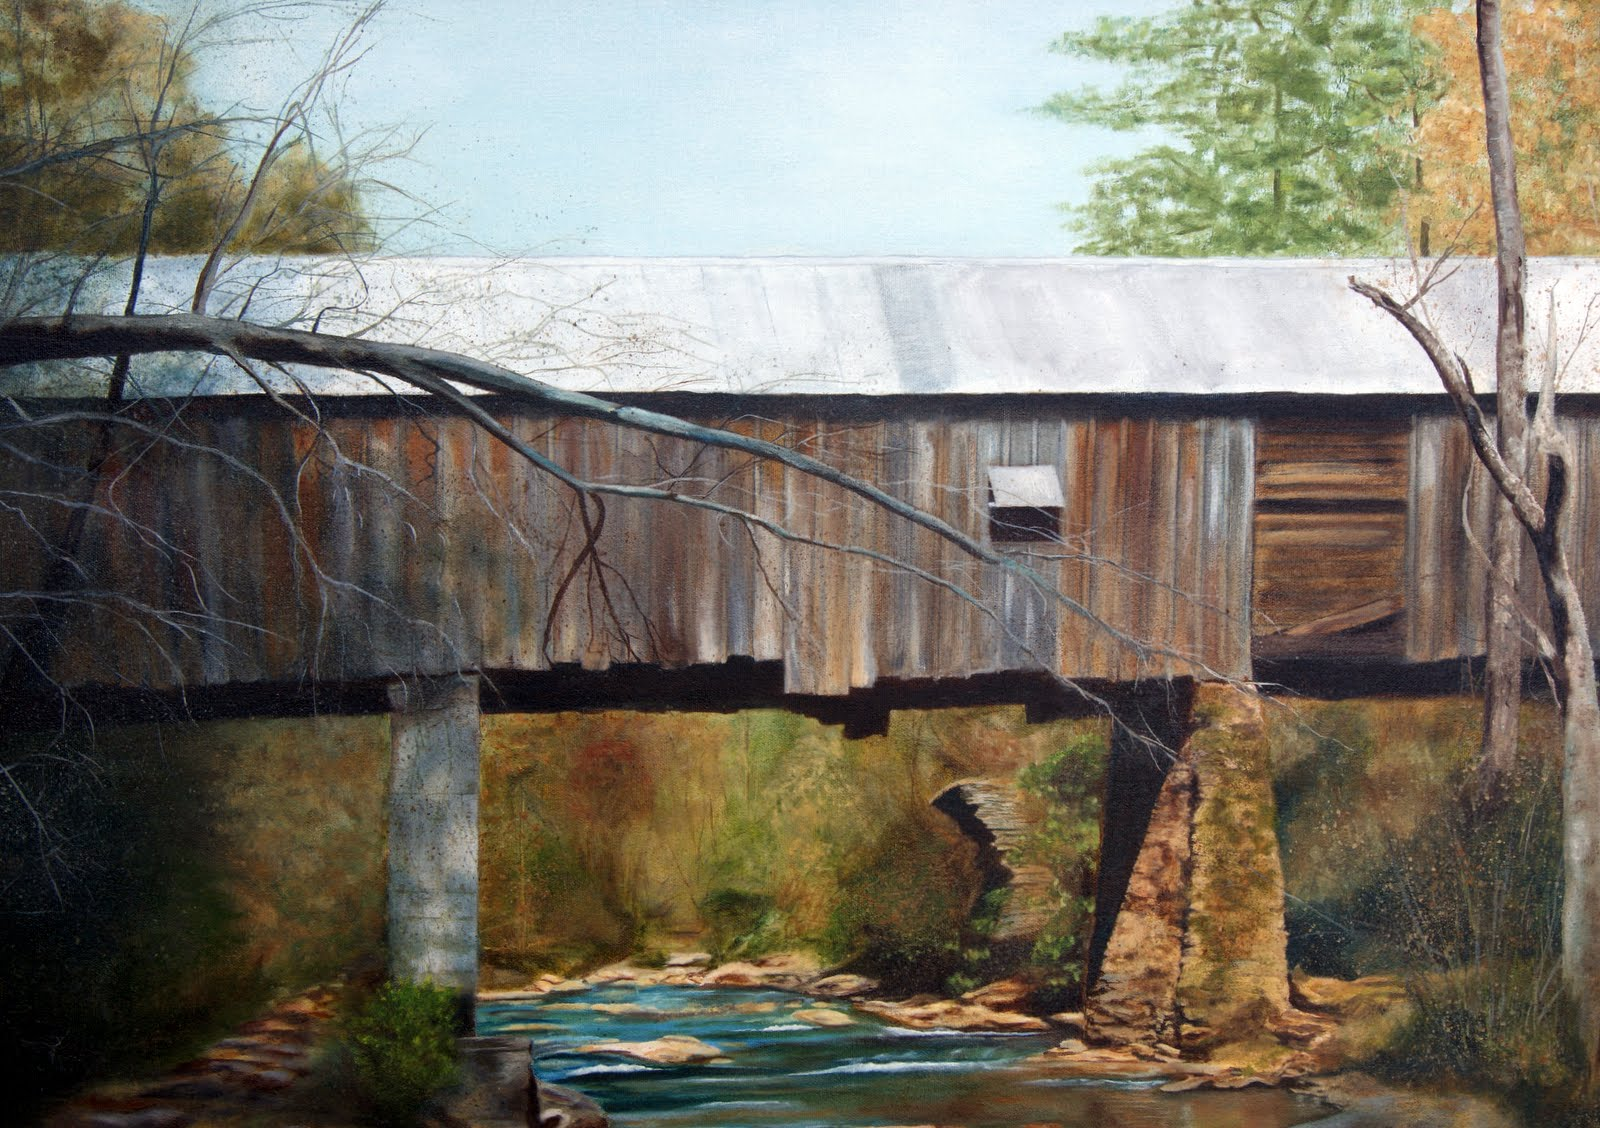 Photo: Concord Covered Bridge in Smyrna, Cobb Co. Georgia.